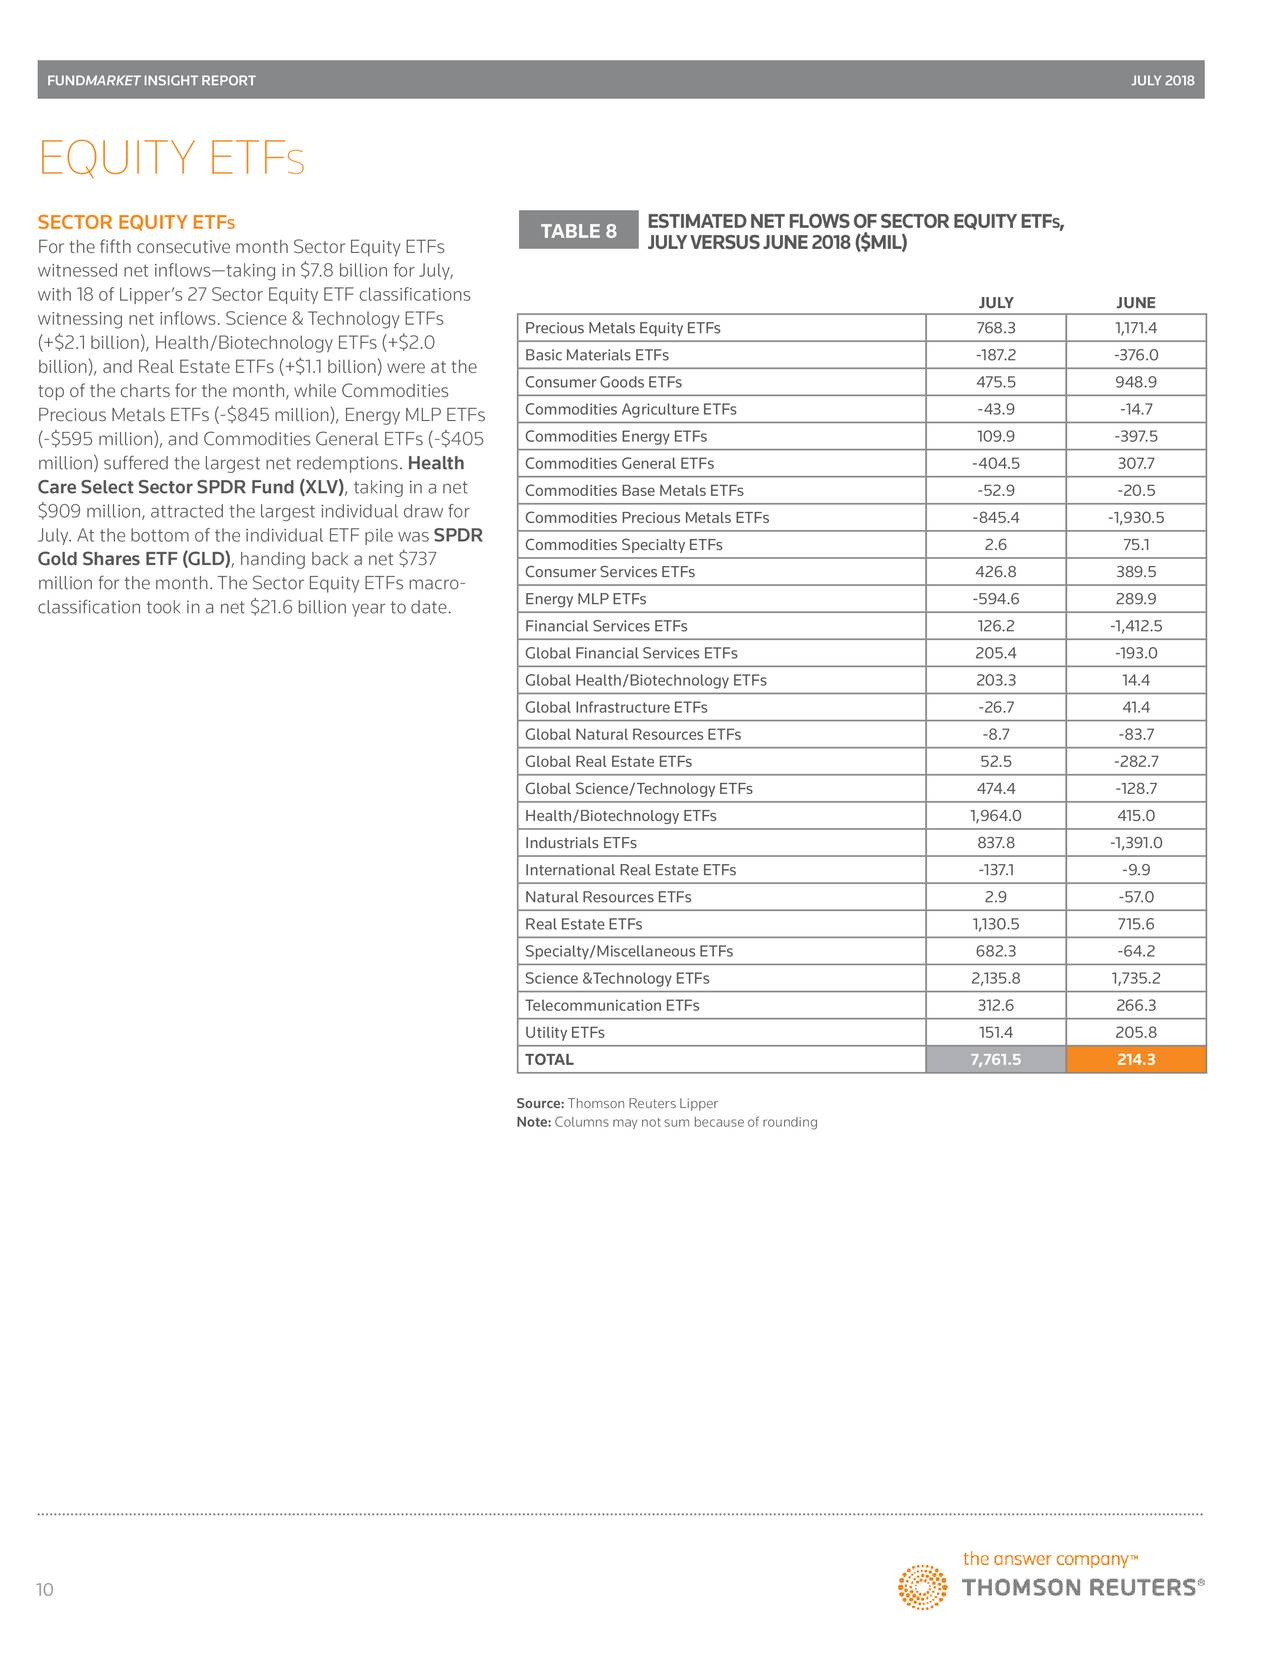 Fund Investors And APs Shun World Equity Funds And ETFs In